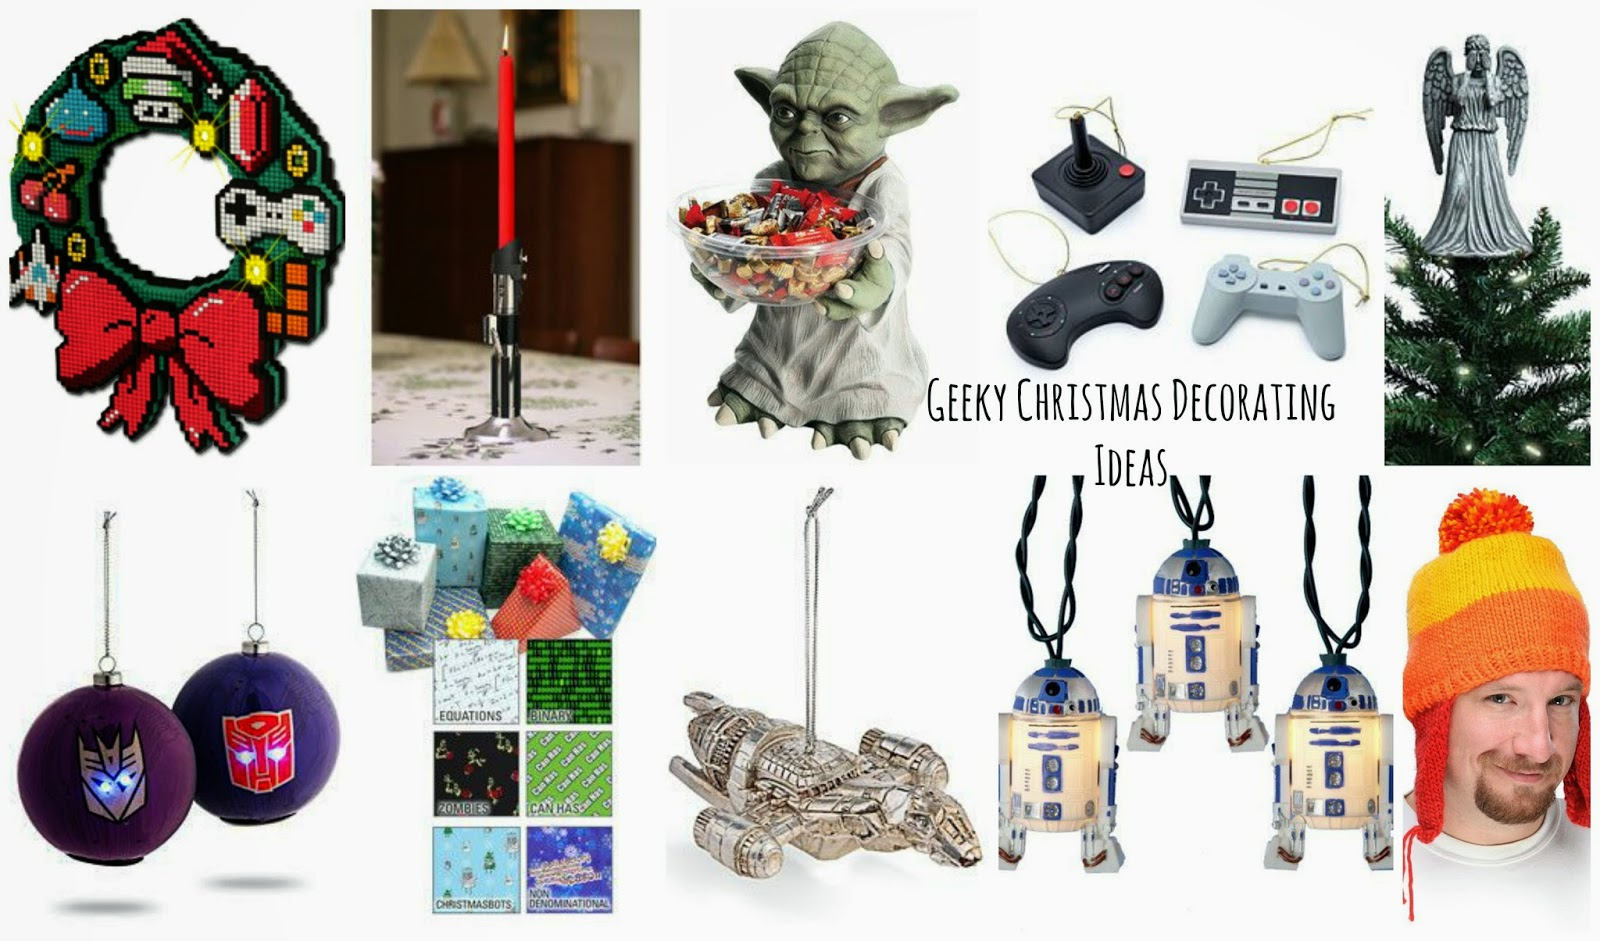 Have yourself a nerdy little Christmas…. Geeky Christmas decorating ideas!